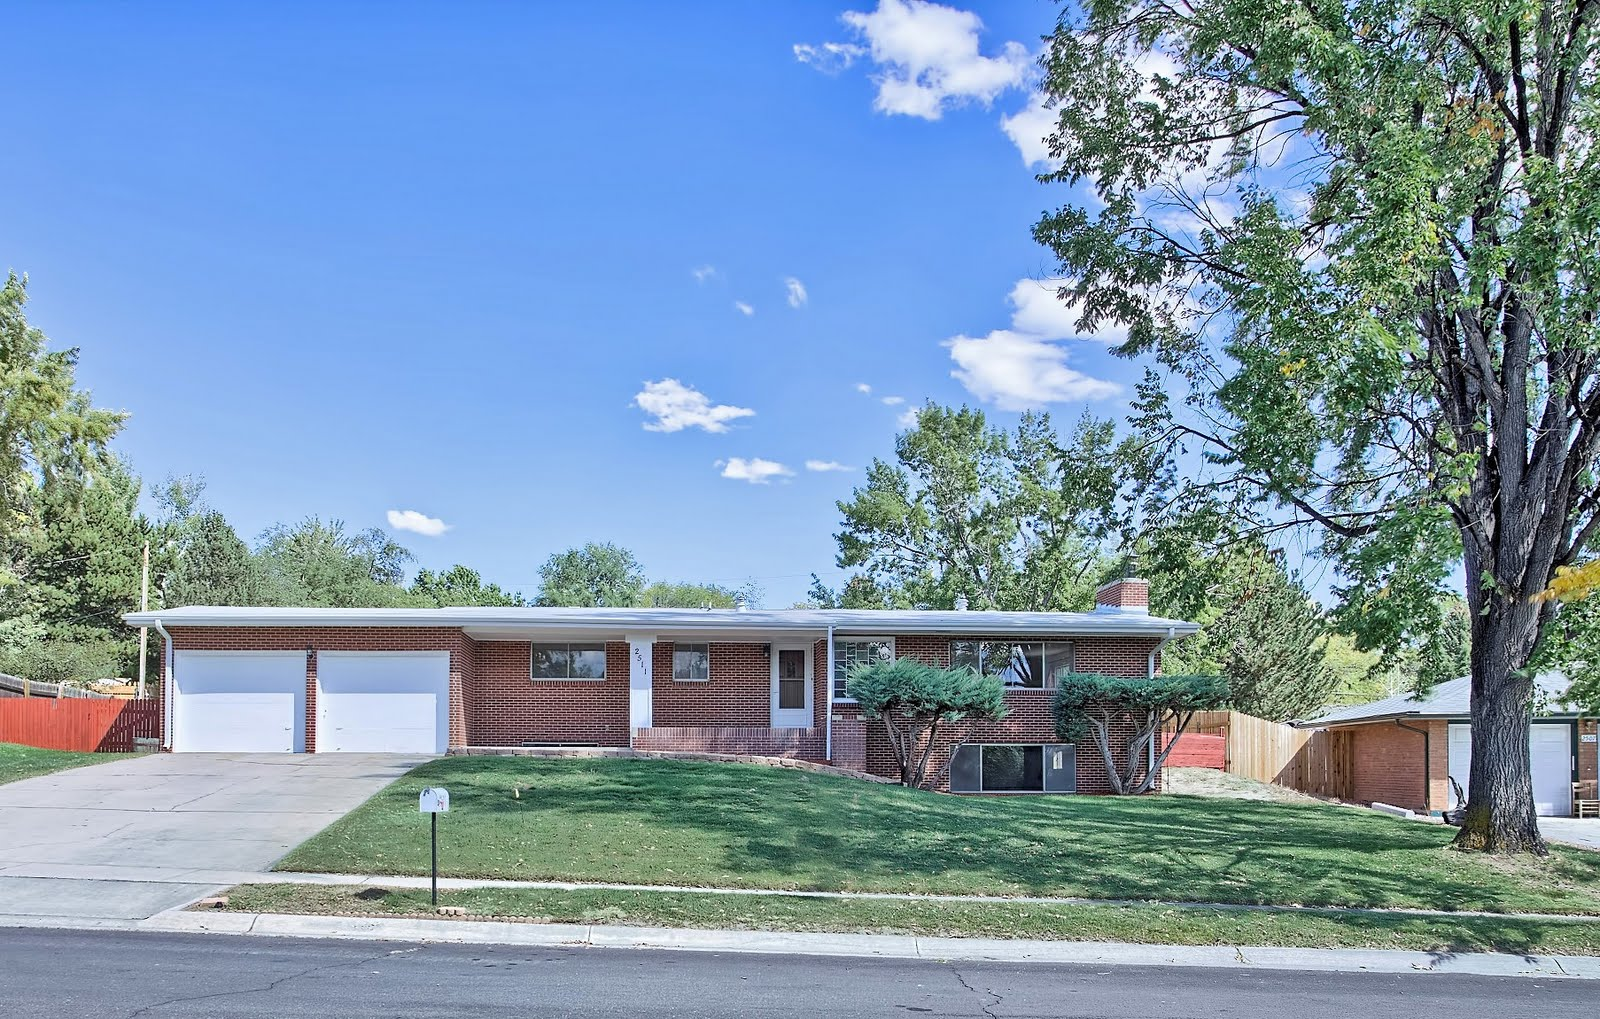 colorado springs real estate updated home for sale in colorado springs